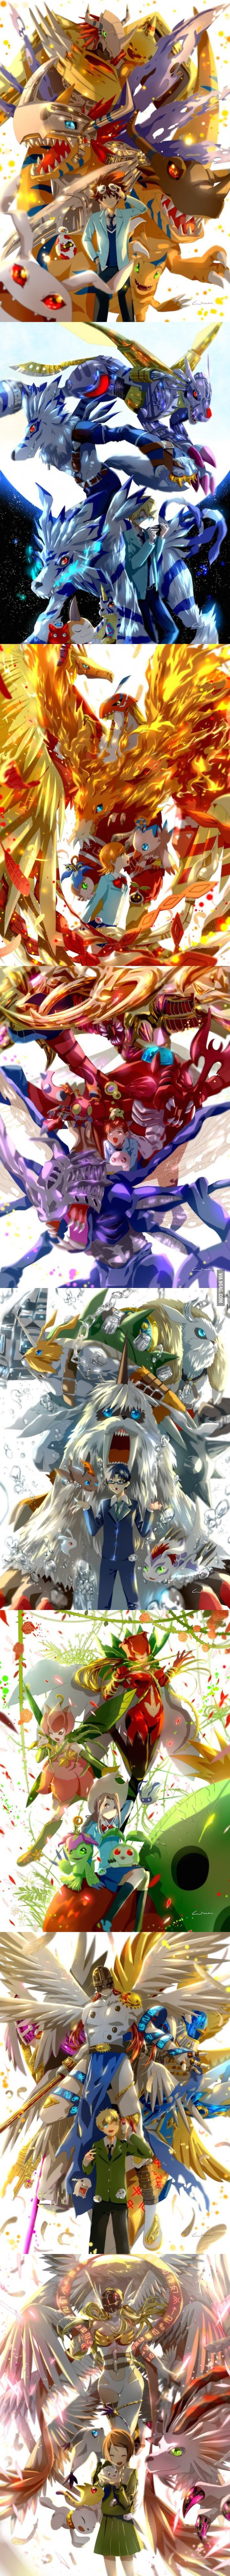 #Digimon Adventure | Main Characters and Digimons